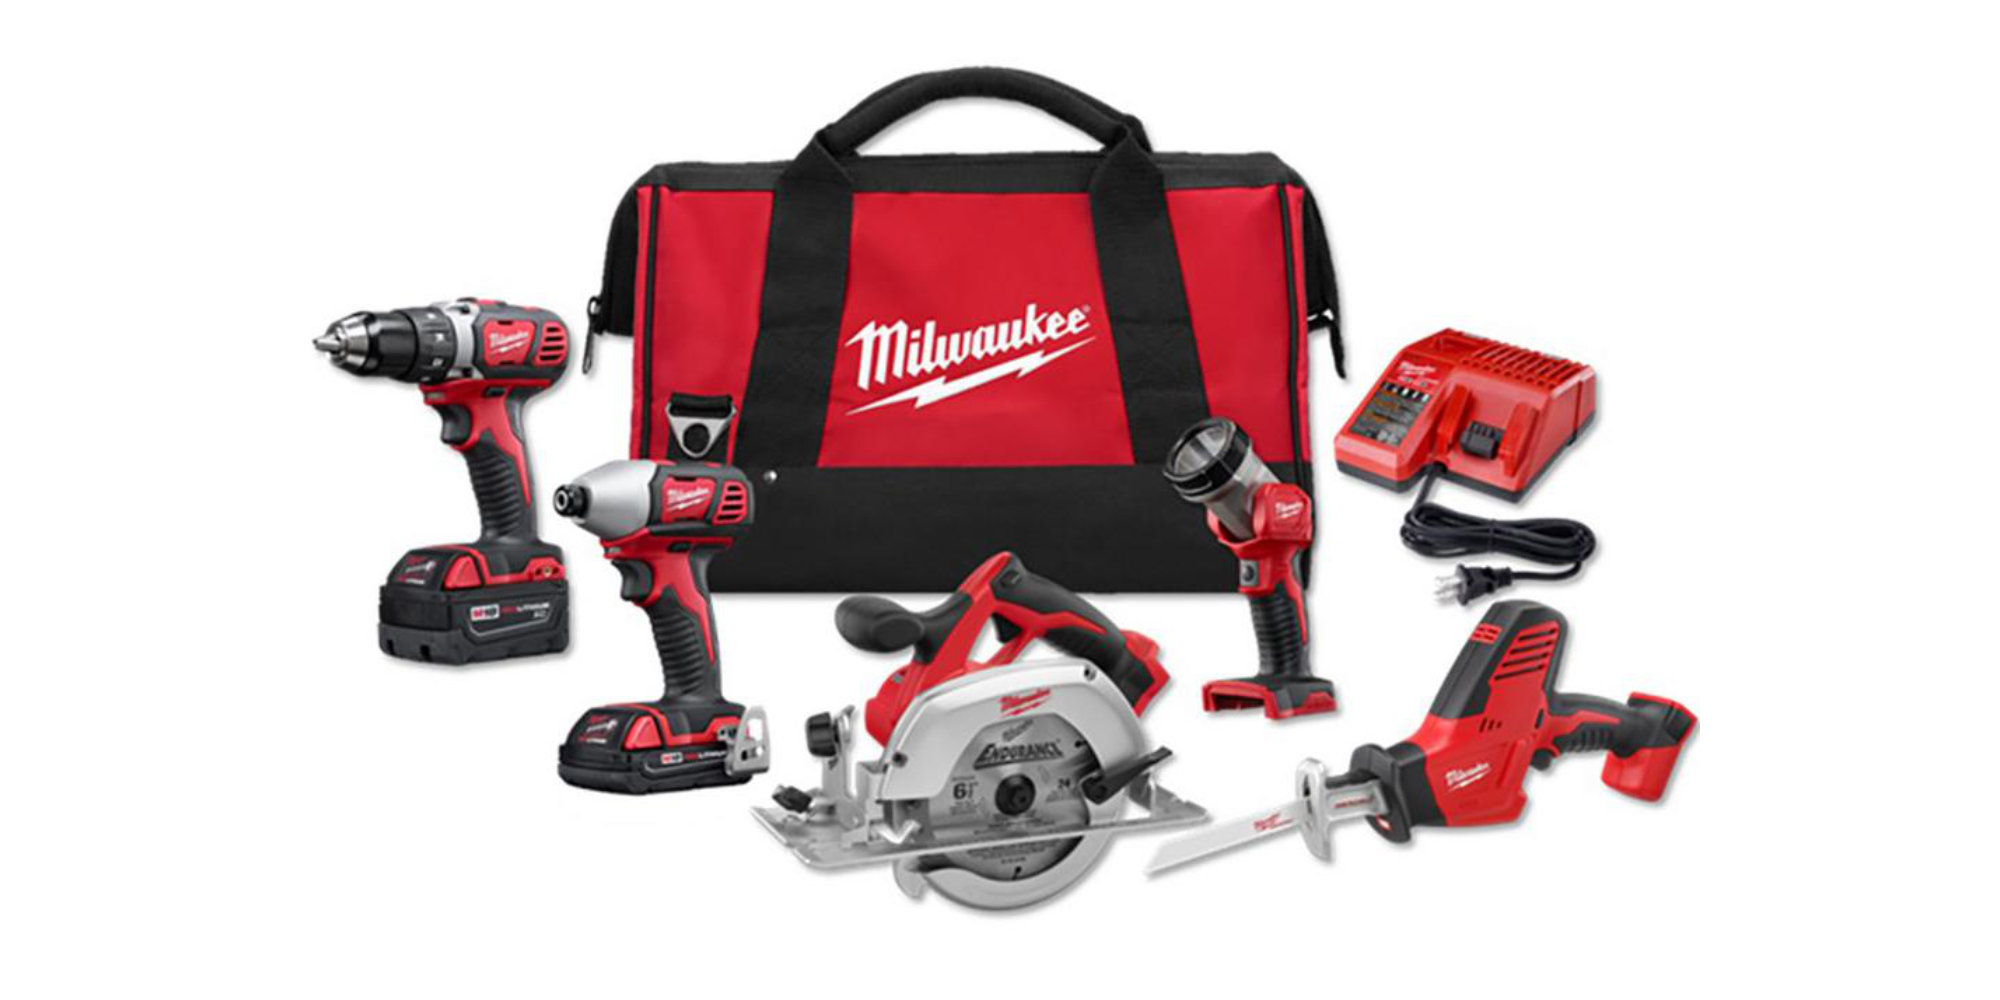 Get ready for spring projects w/ Milwaukee's M18 5-Tool Kit for $279 shipped (save $70)